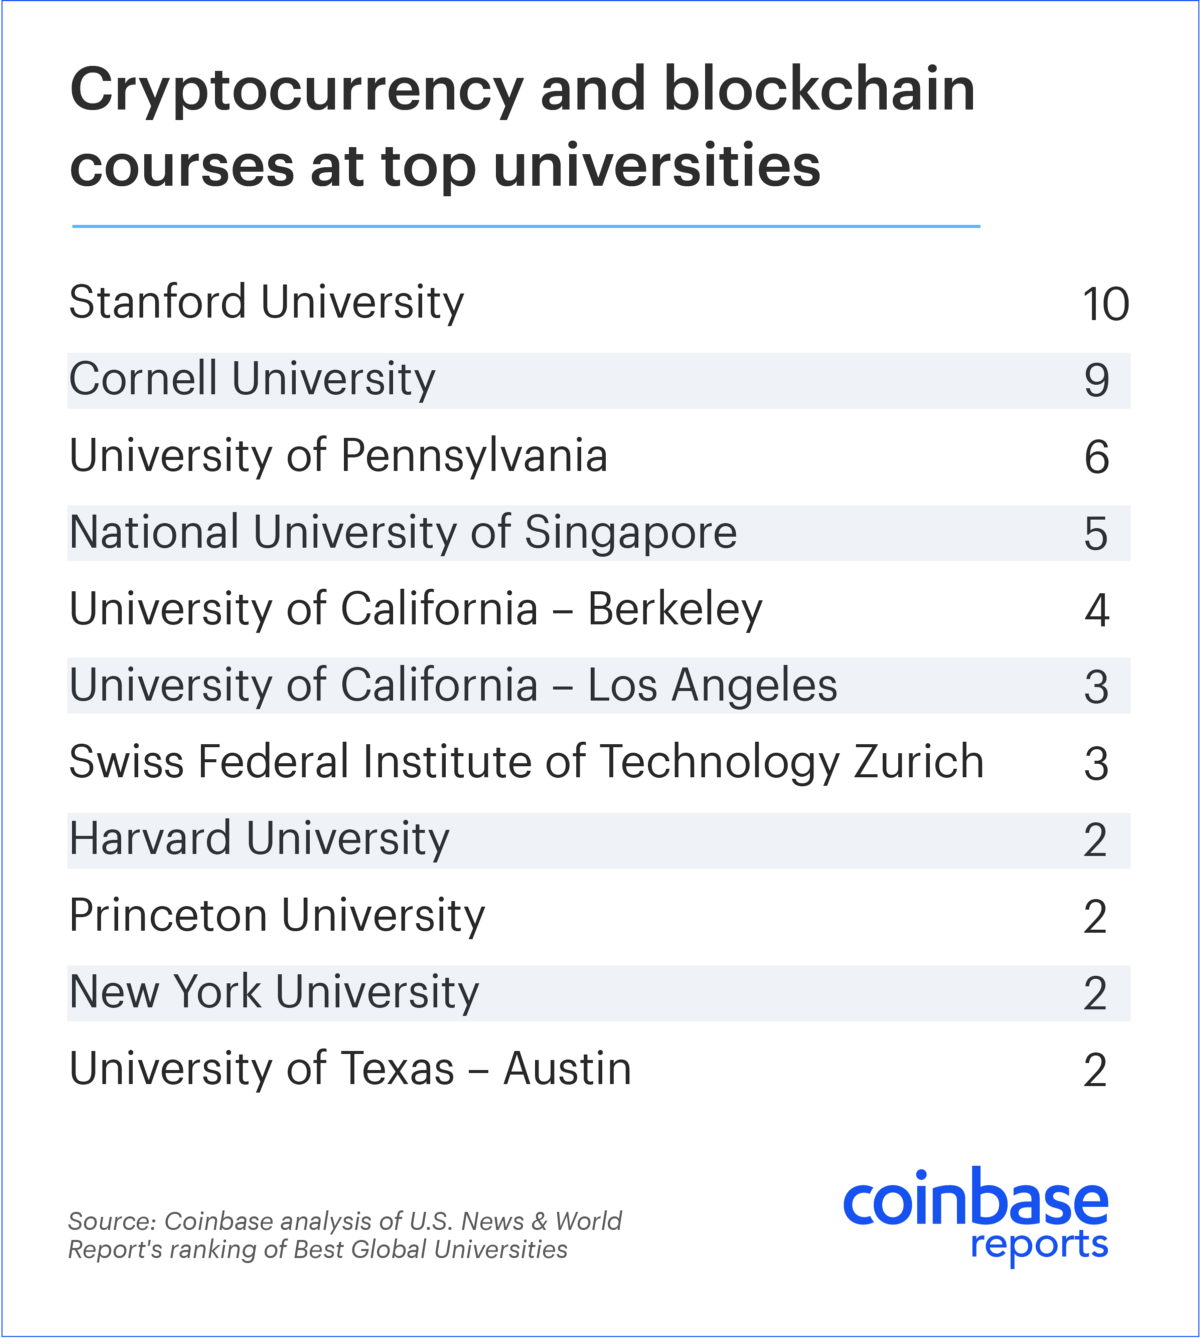 similar scenes are playing out at top universities around the world students are flocking to classes on cryptocurrency and blockchain the distributed